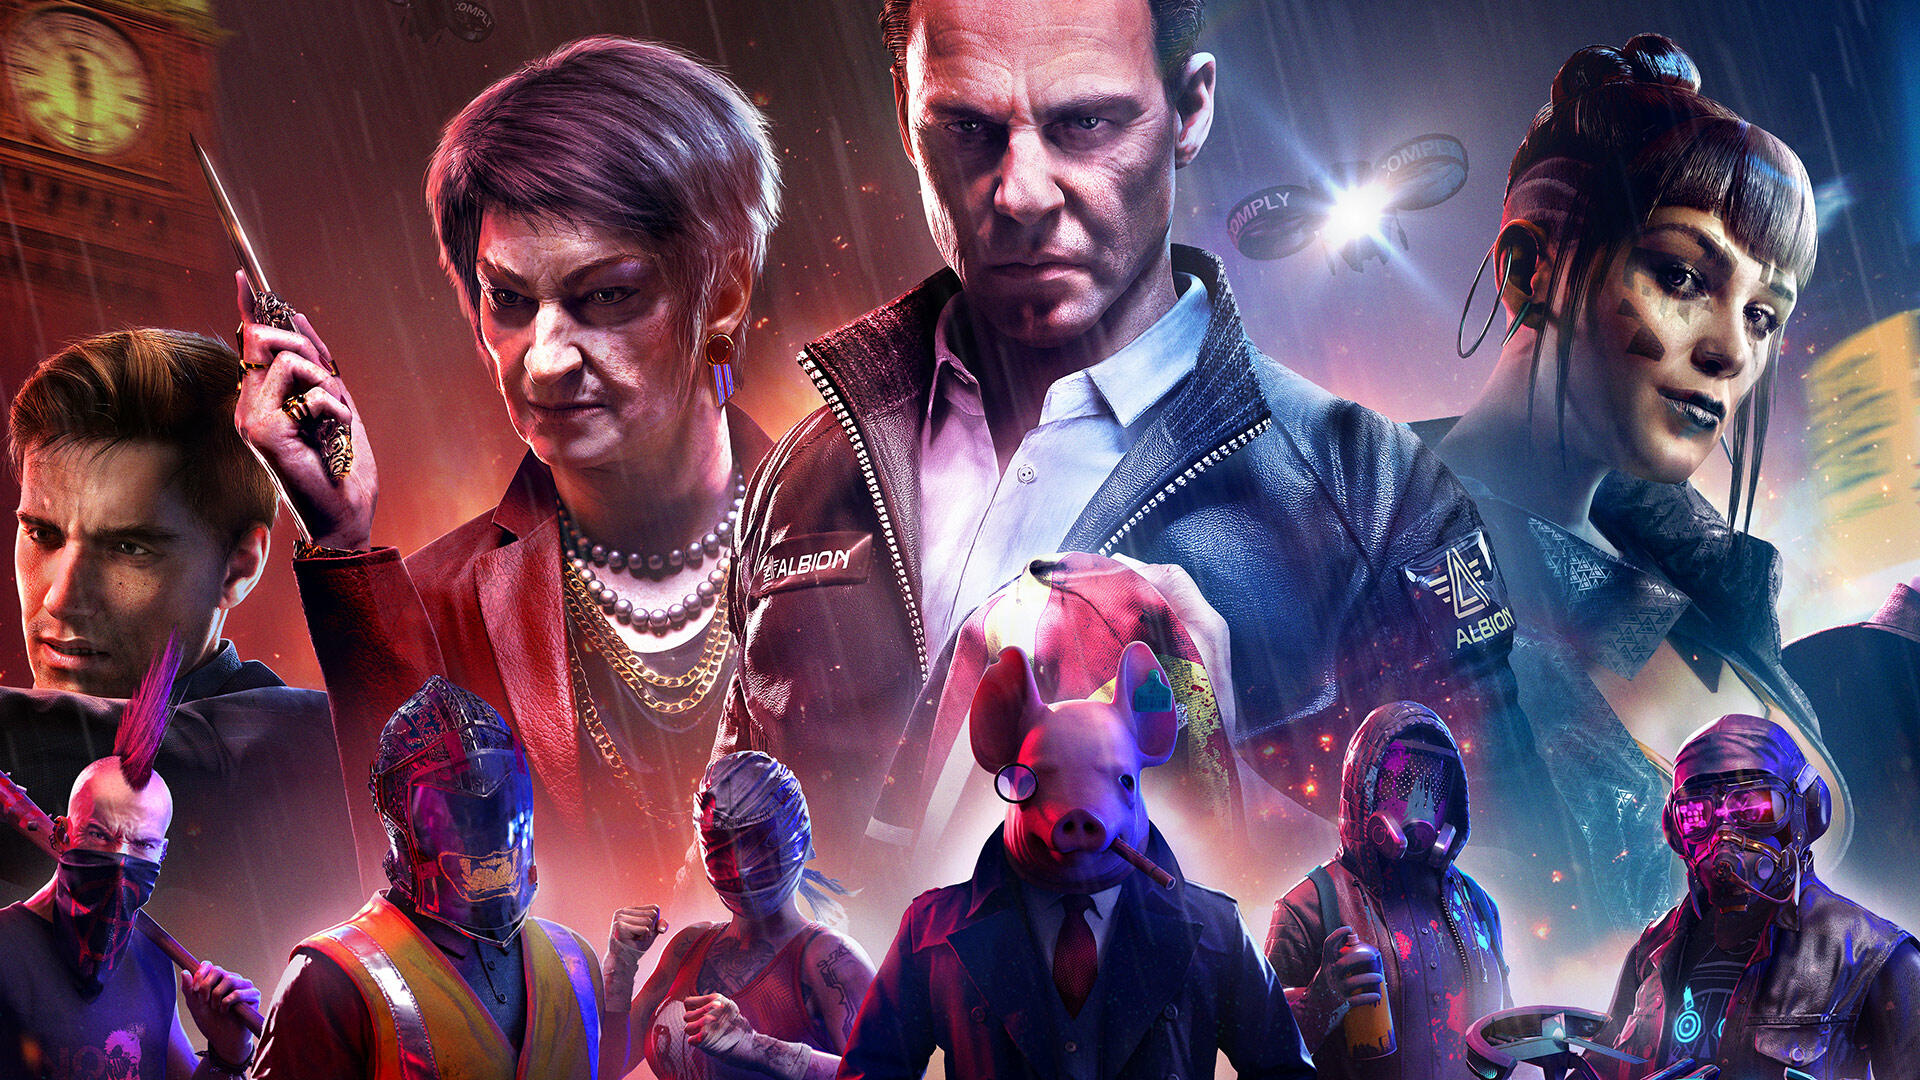 Watch Dogs Legion Features A Descendant Of Assassin S Creed Syndicate S Protagonist Usgamer